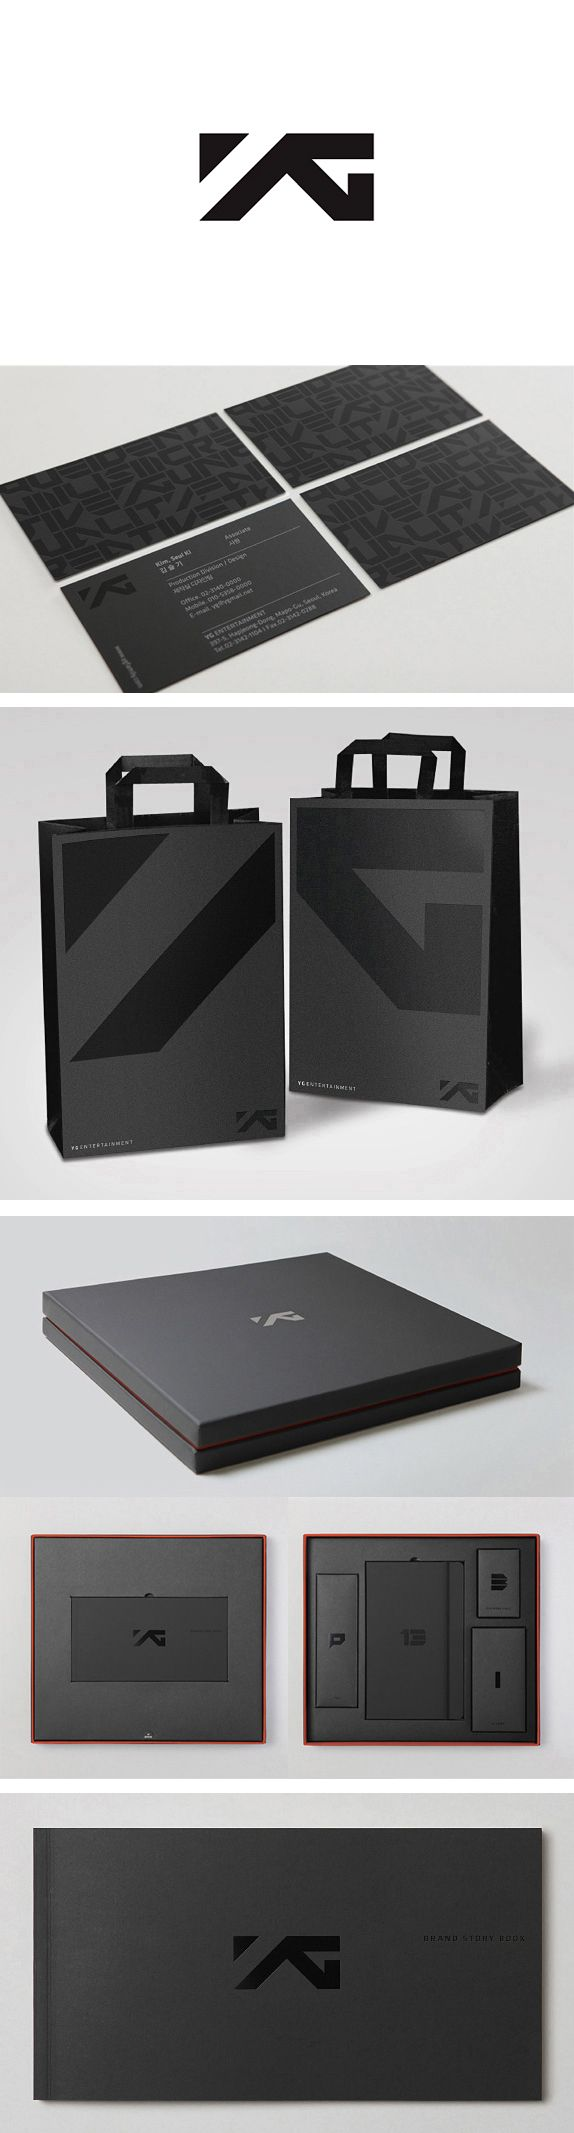 Identity / YG rebrand beauty in black #packaging #branding PD